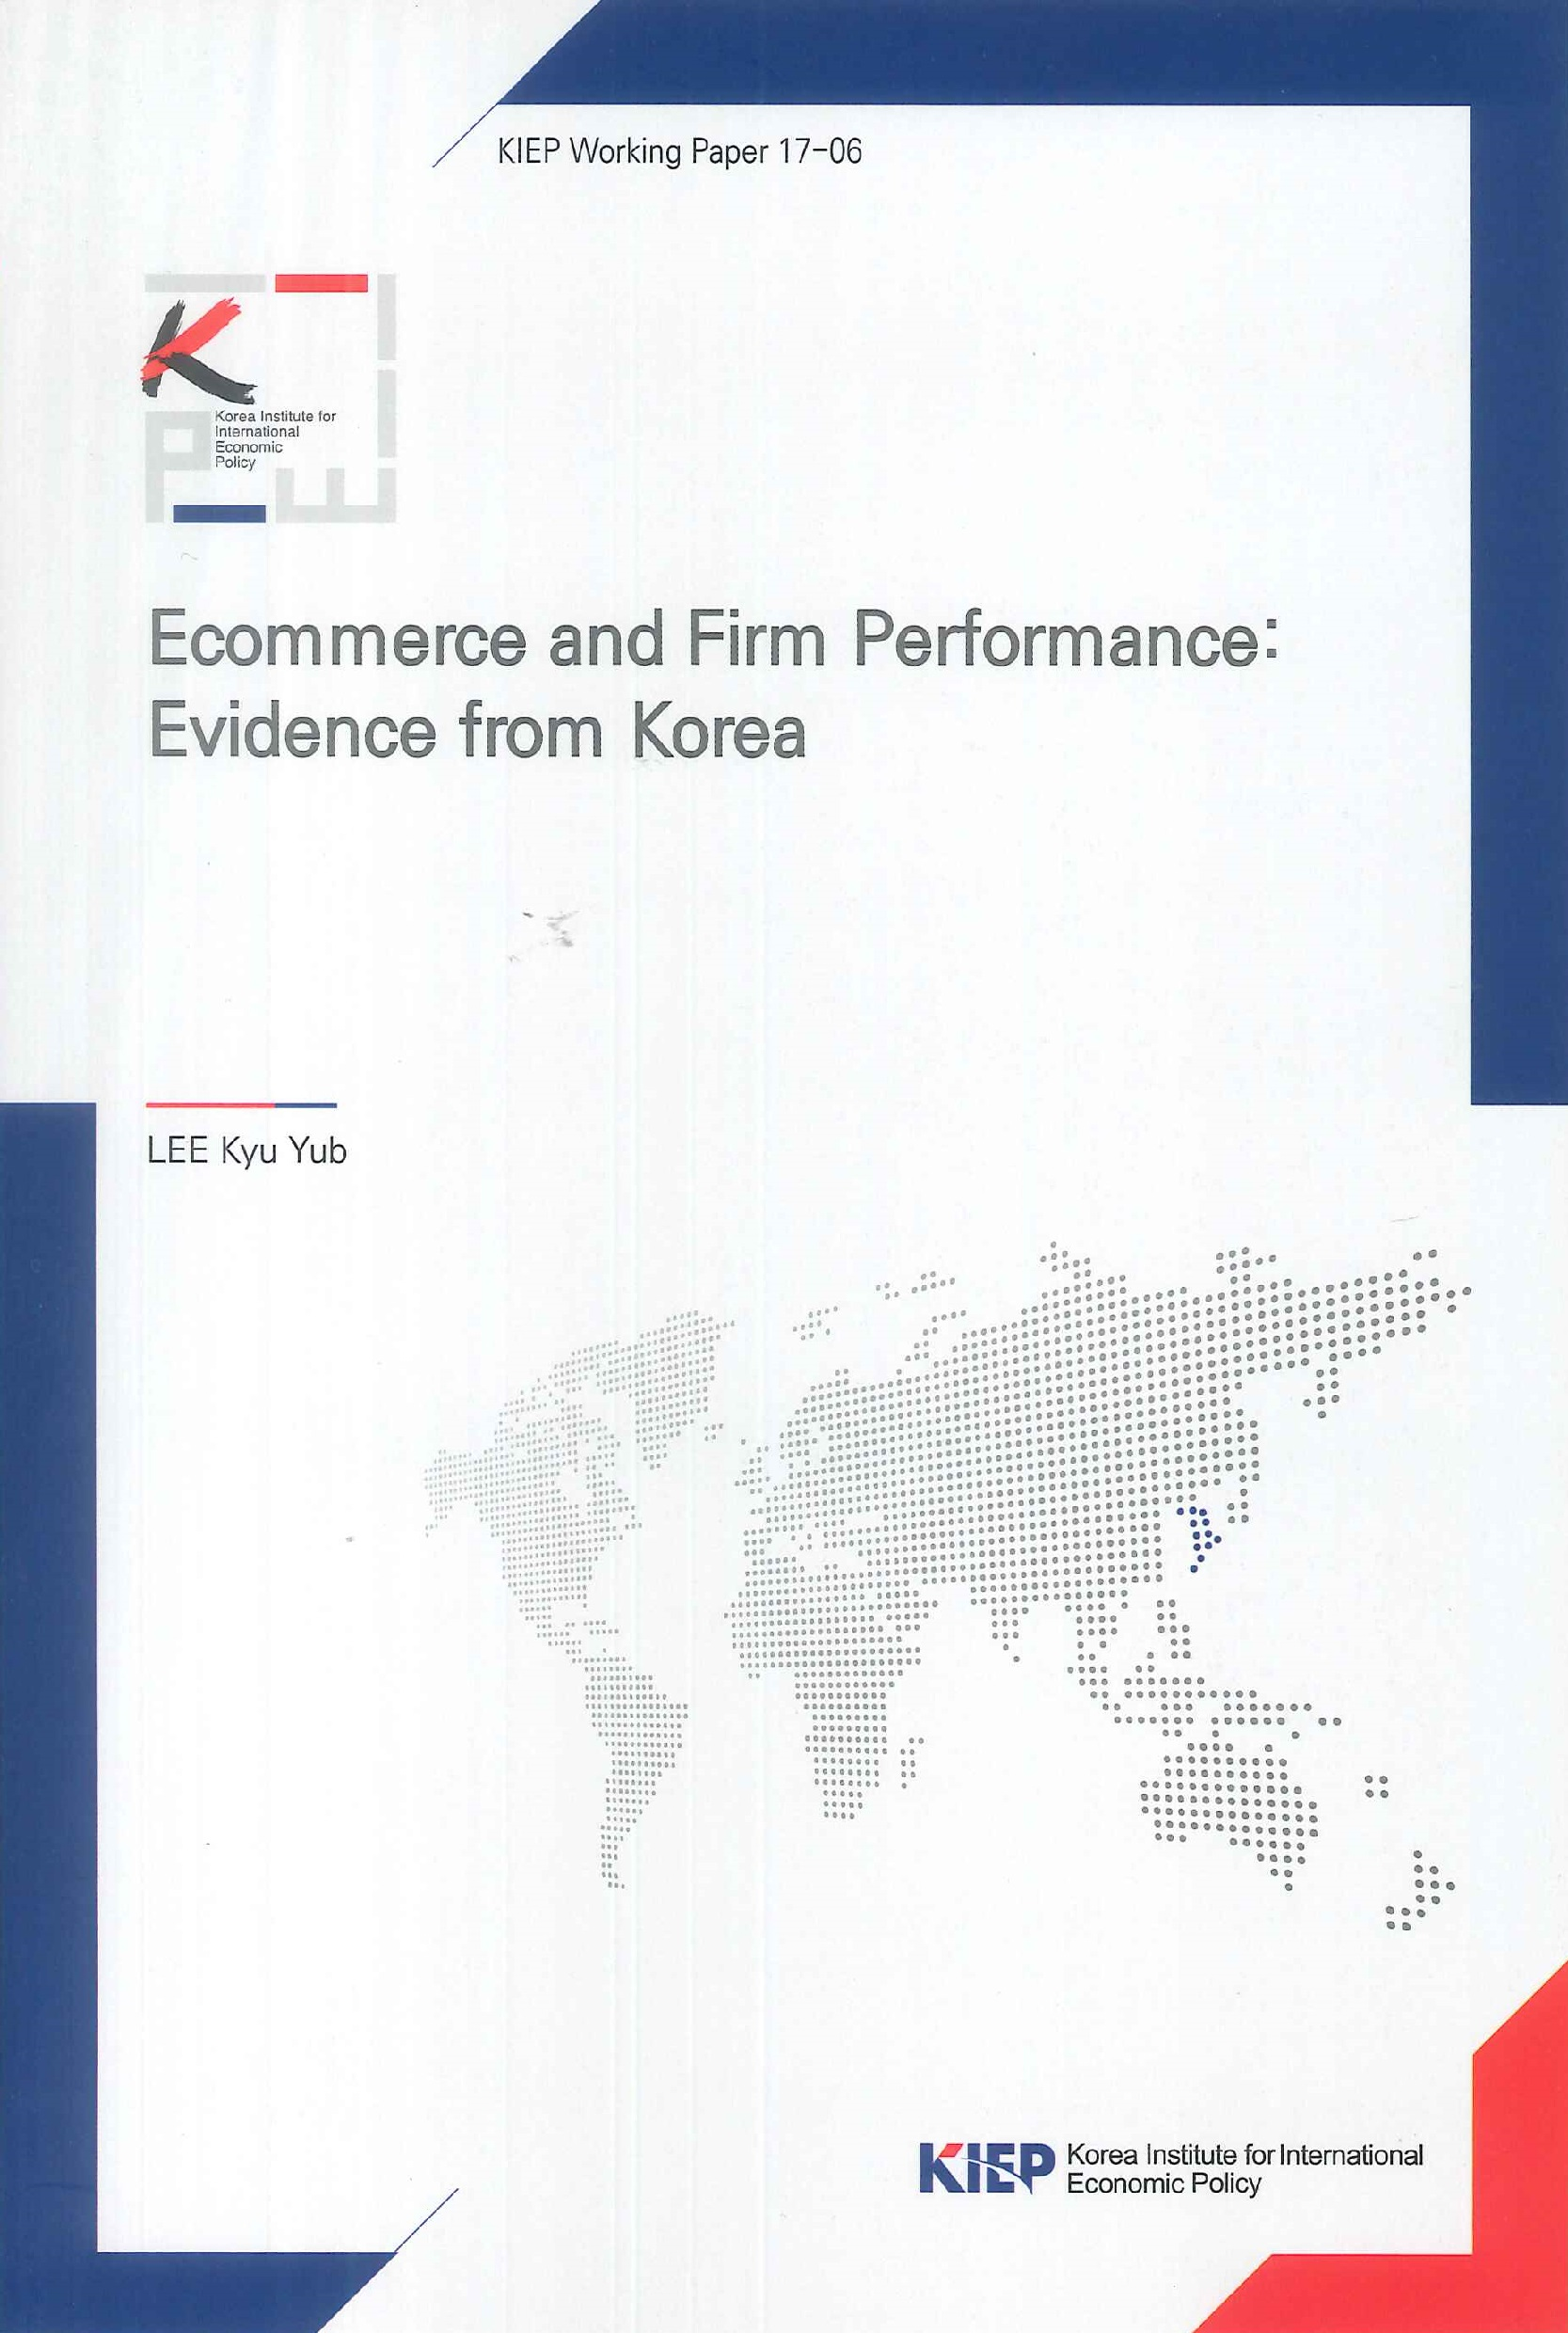 Ecommerce and firm performance:evidence from Korea